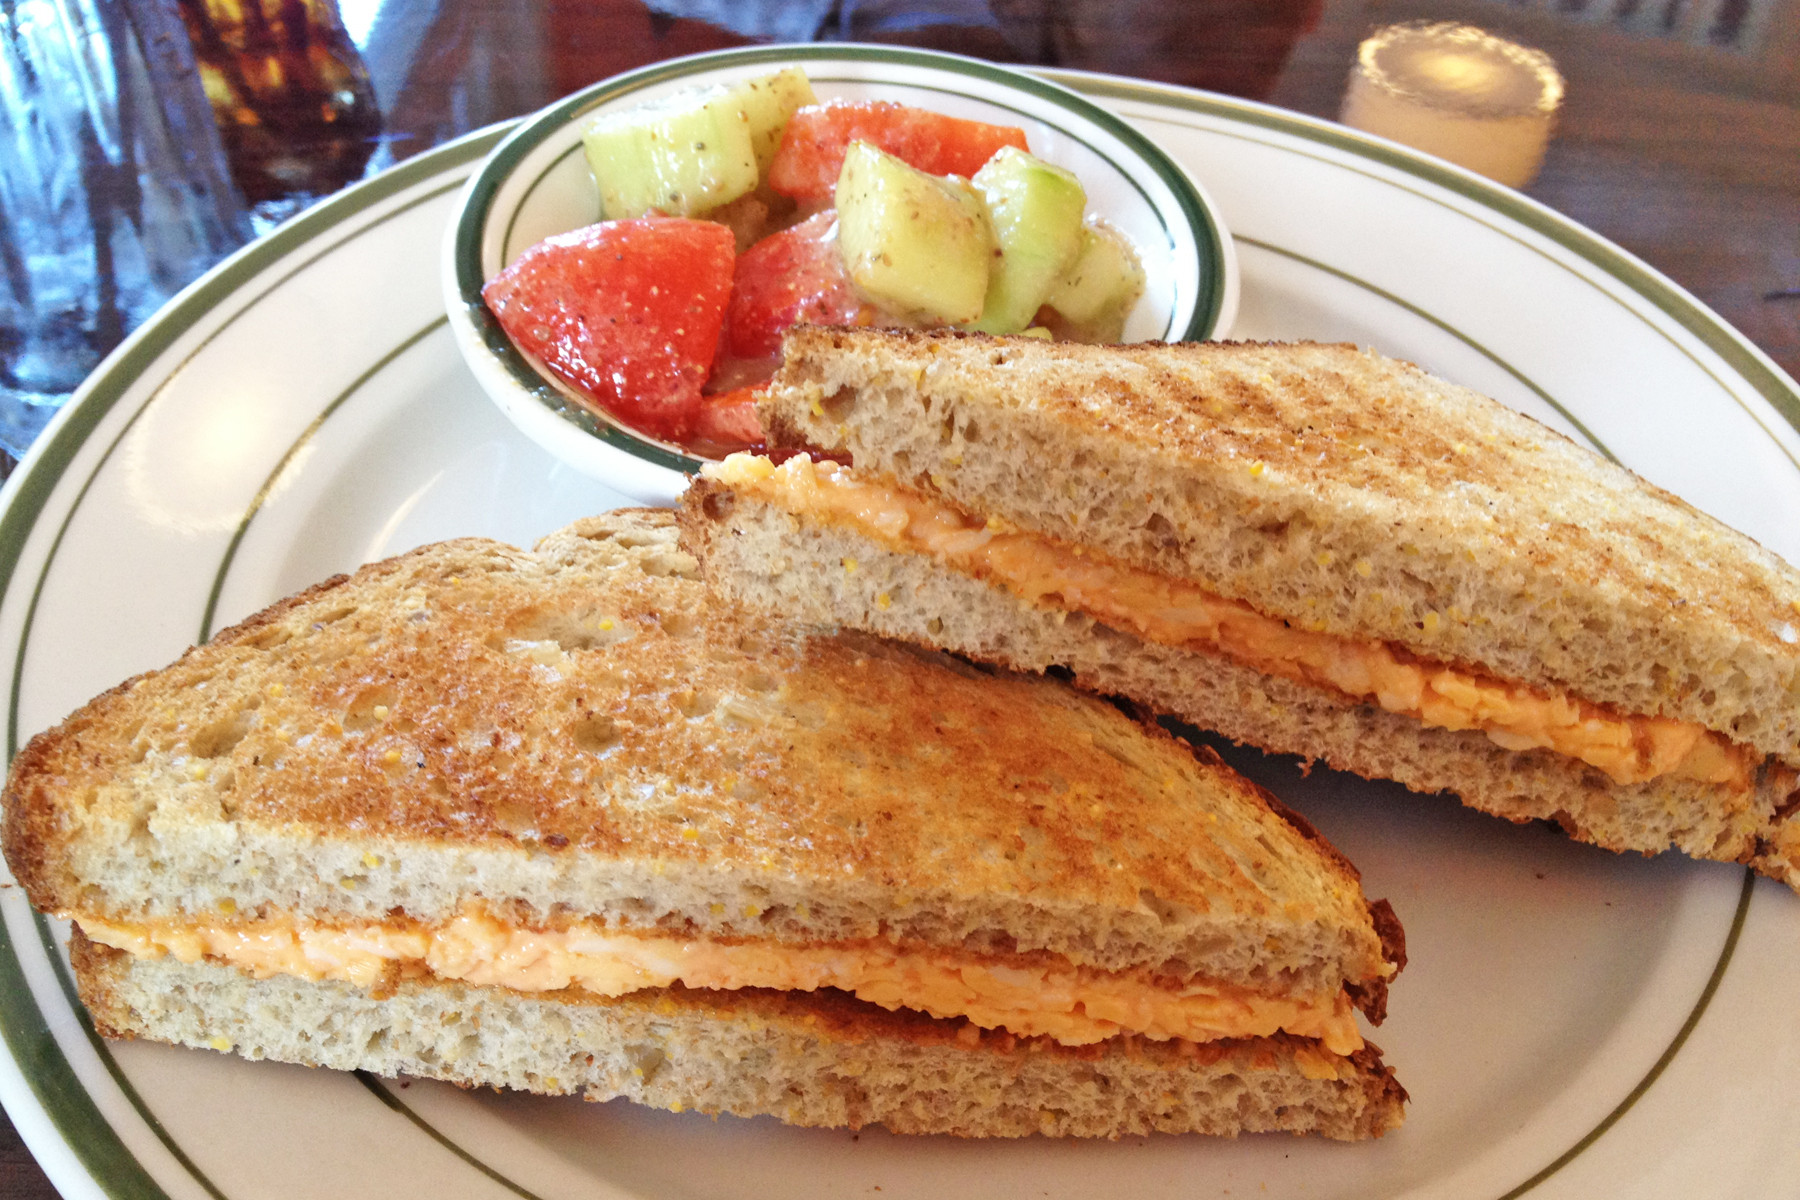 Creamy homemade pimento cheese on toasted multigrain bread with a side of cucumber and tomato salad is perfect for lunch or a light dinner.